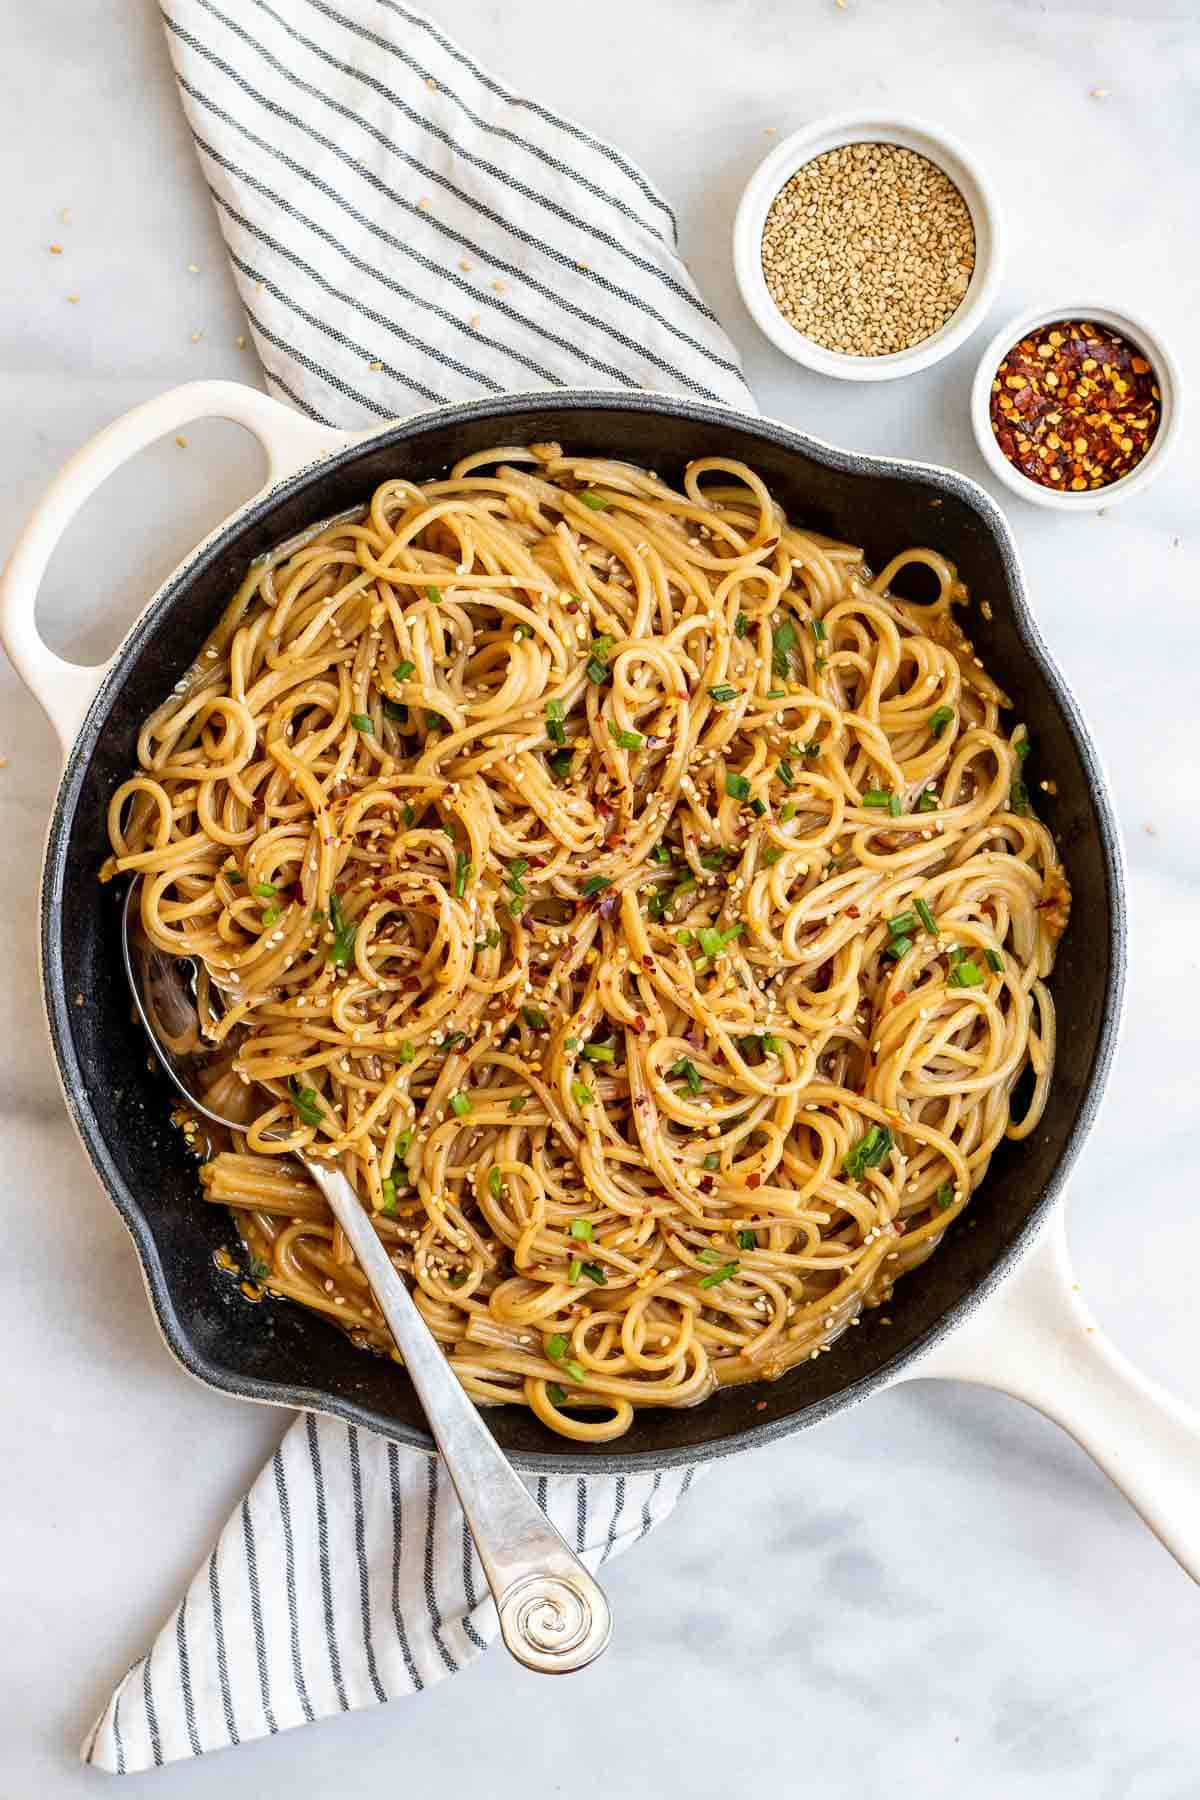 Skillet with the noodles and a large spoon on the side.